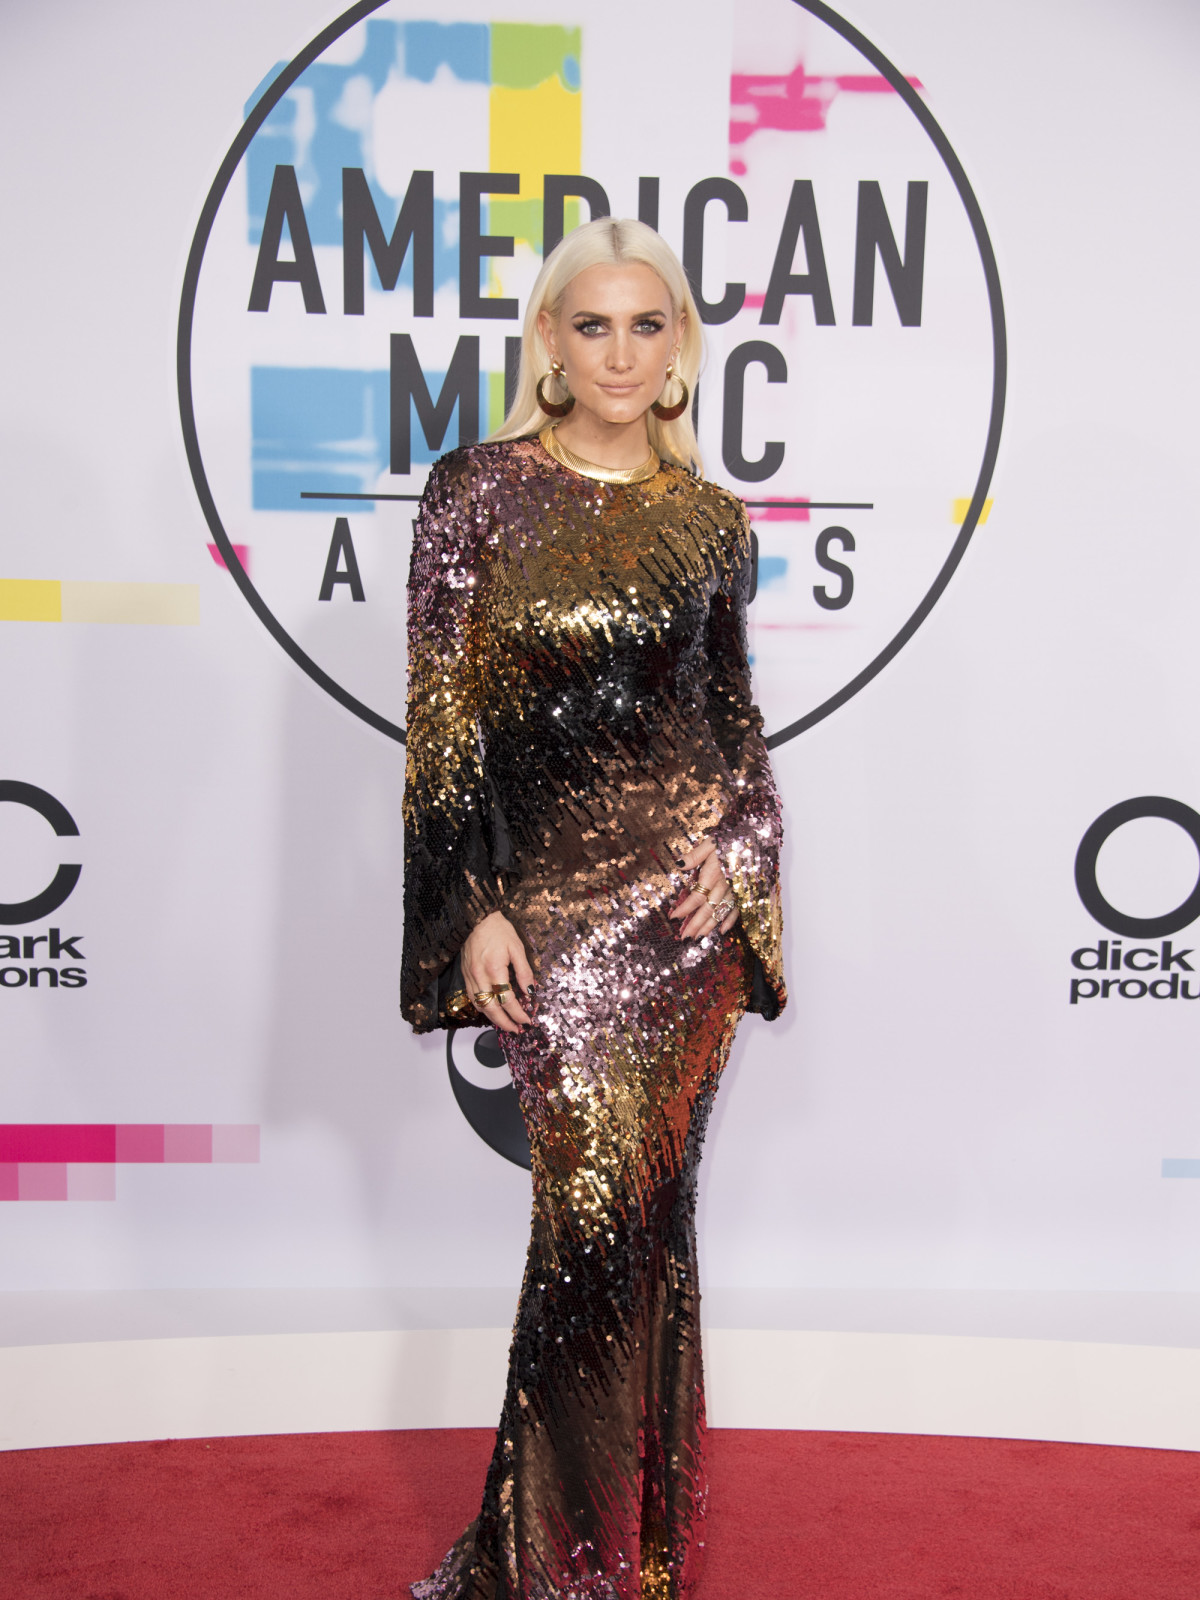 American Music Awards Ashlee Simpson